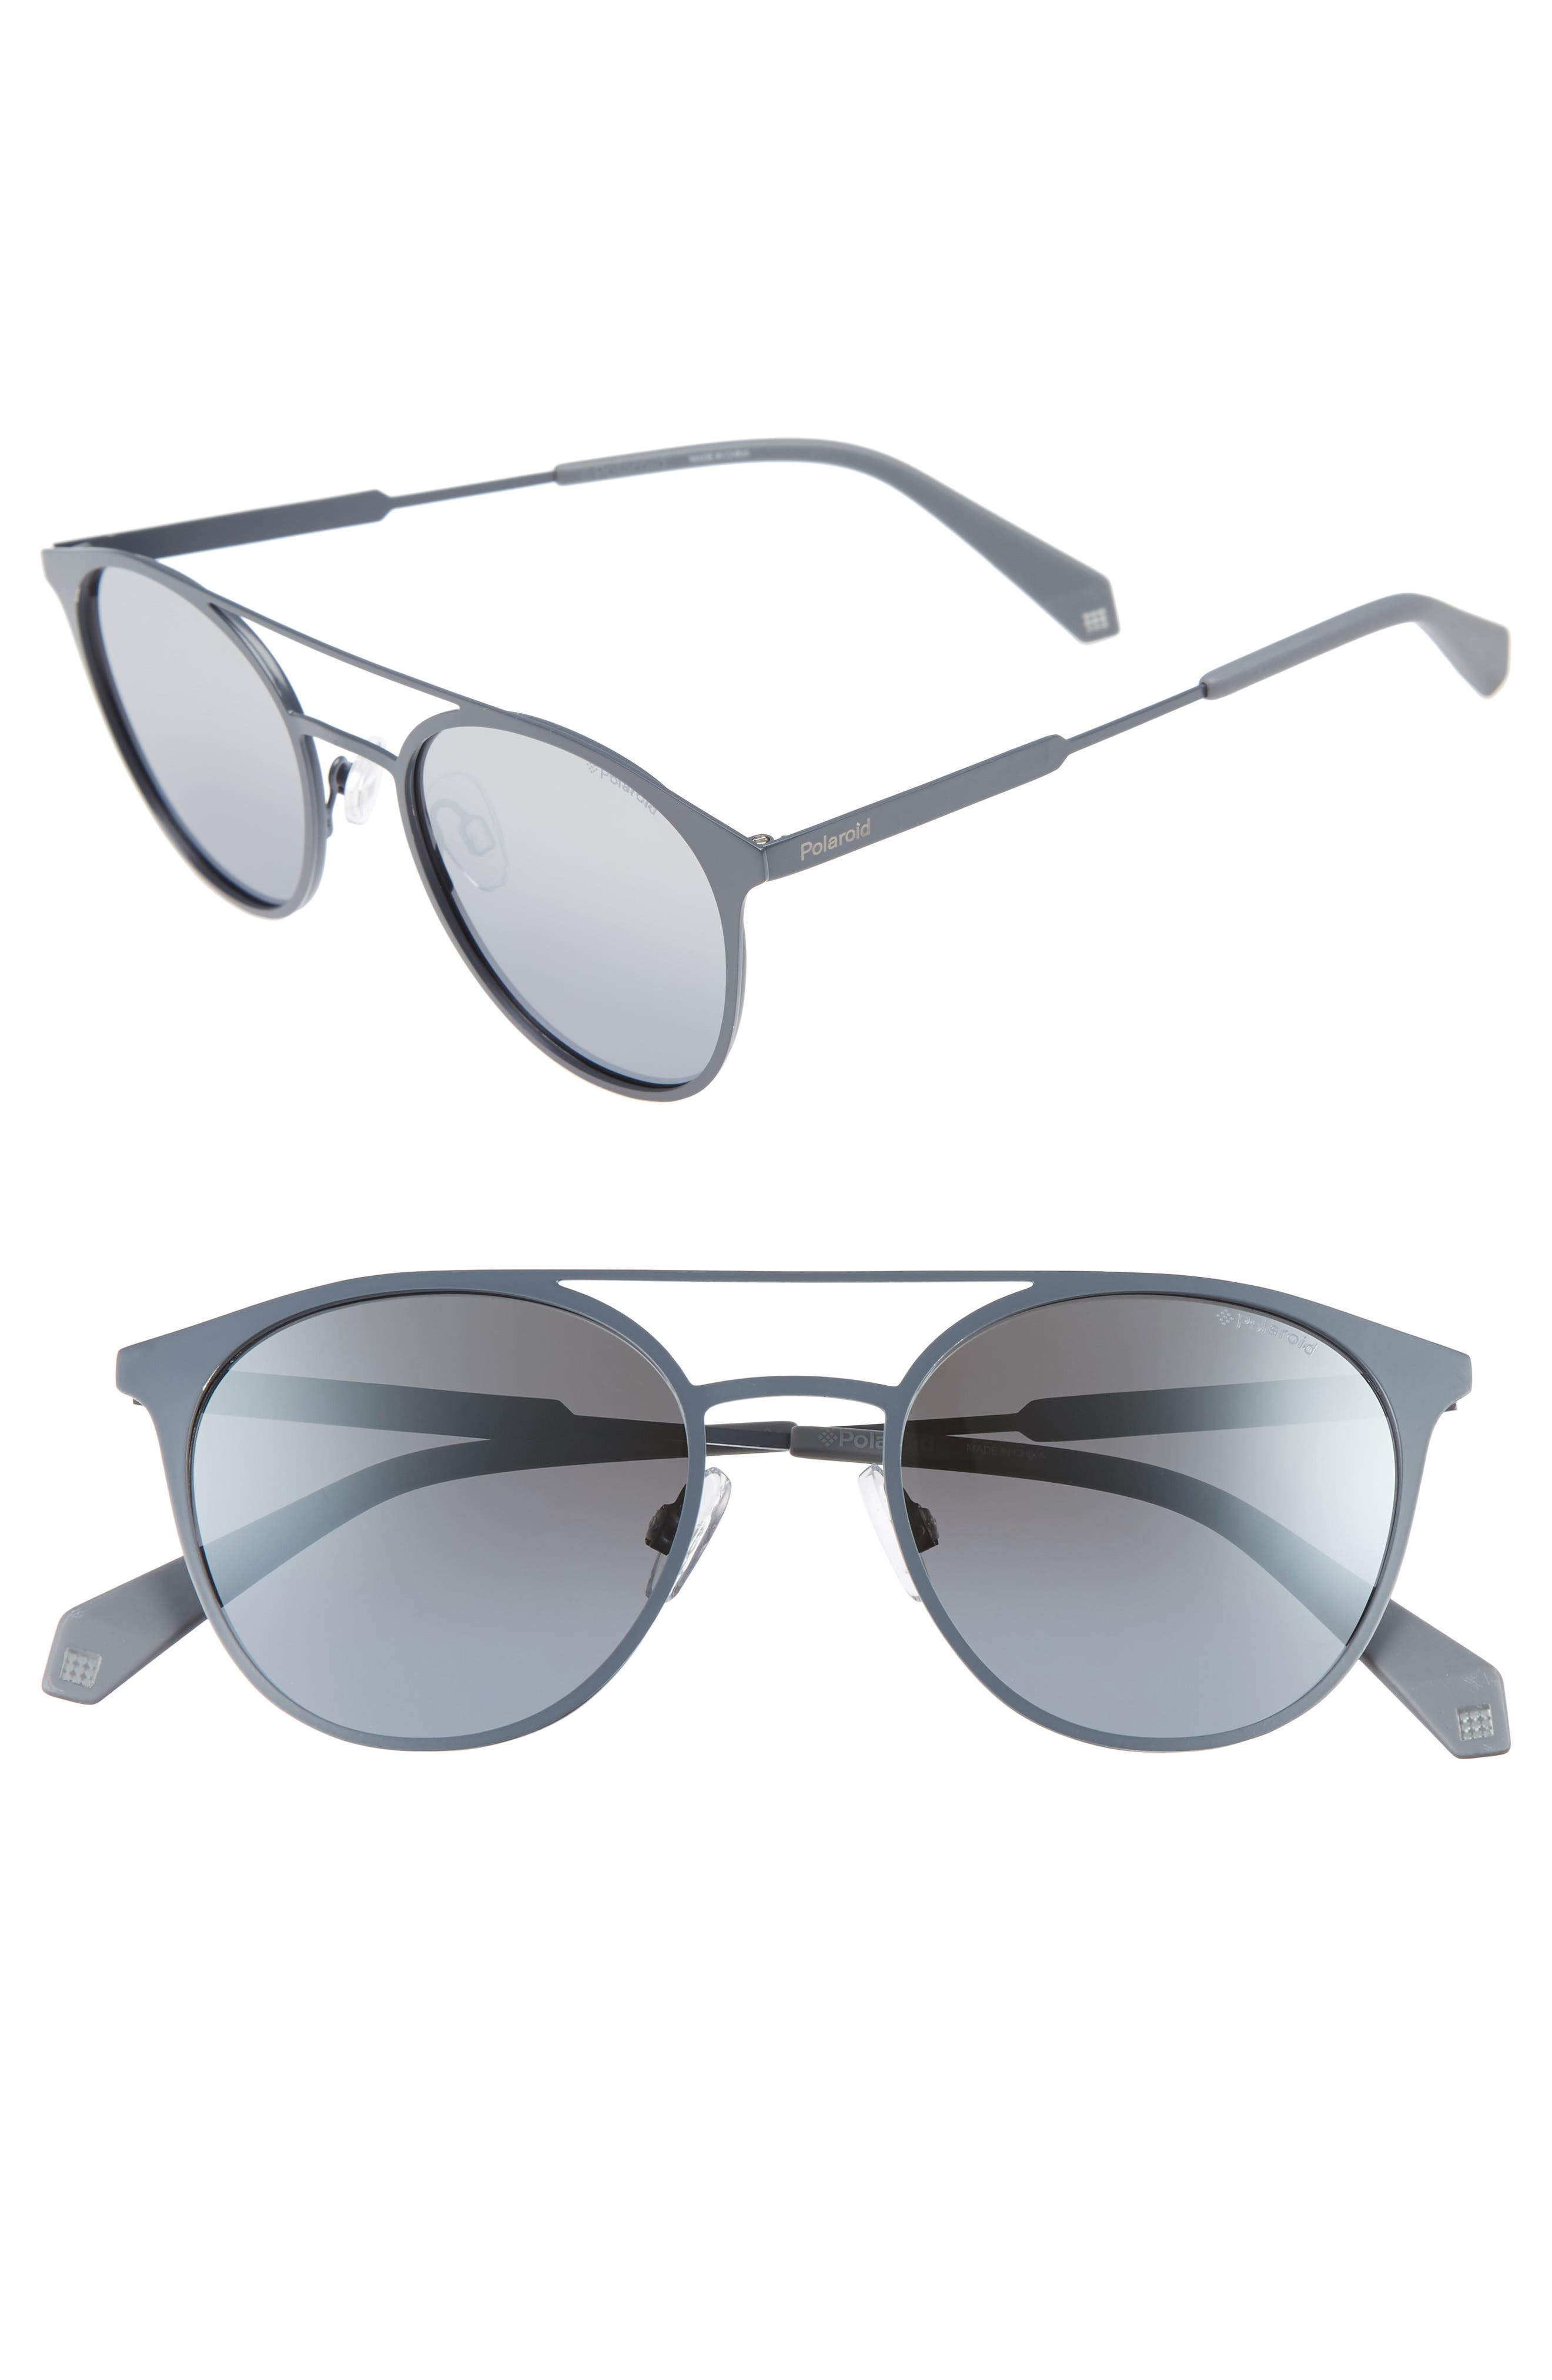 Polaroid 51mm Polarized Round Stainless Steel Sunglasses